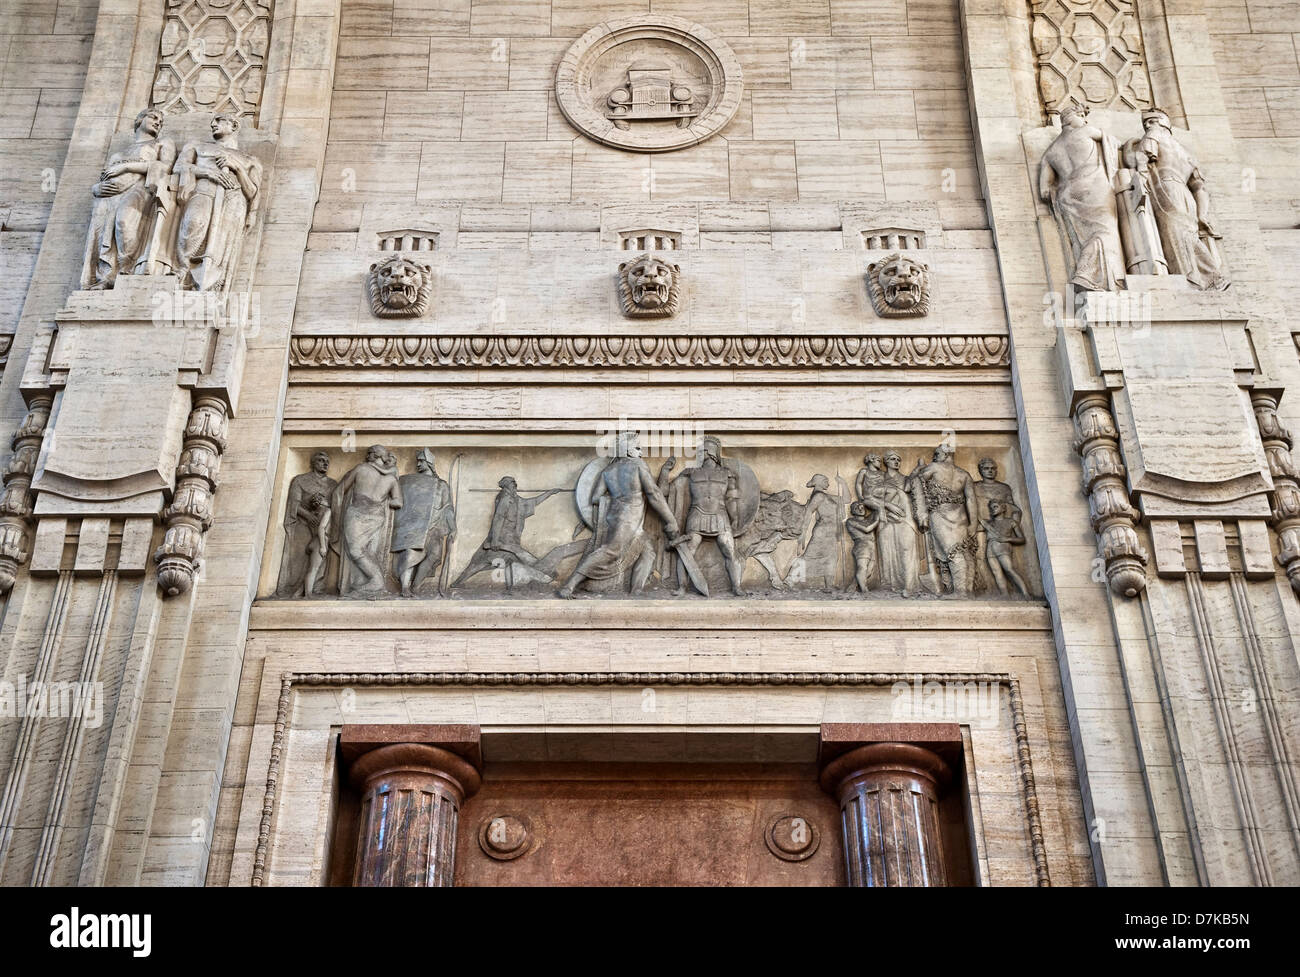 Milan railway station (Milano Centrale), Italy, completed in 1931 - Stock Image